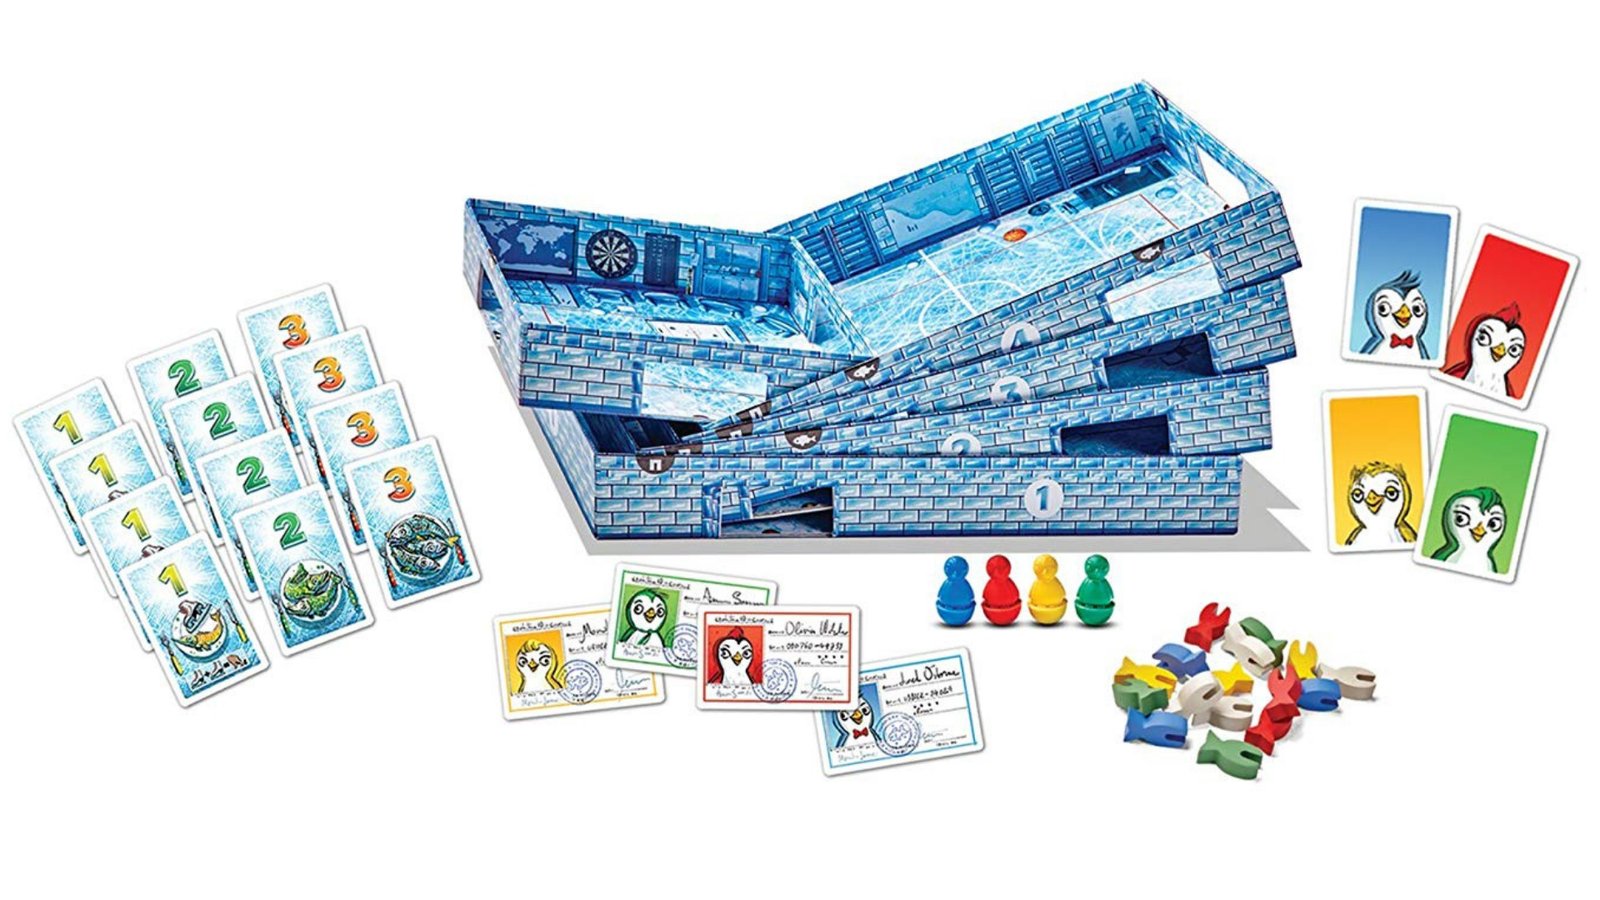 The Best Board Games for Kids, According to a Board Game Blogger